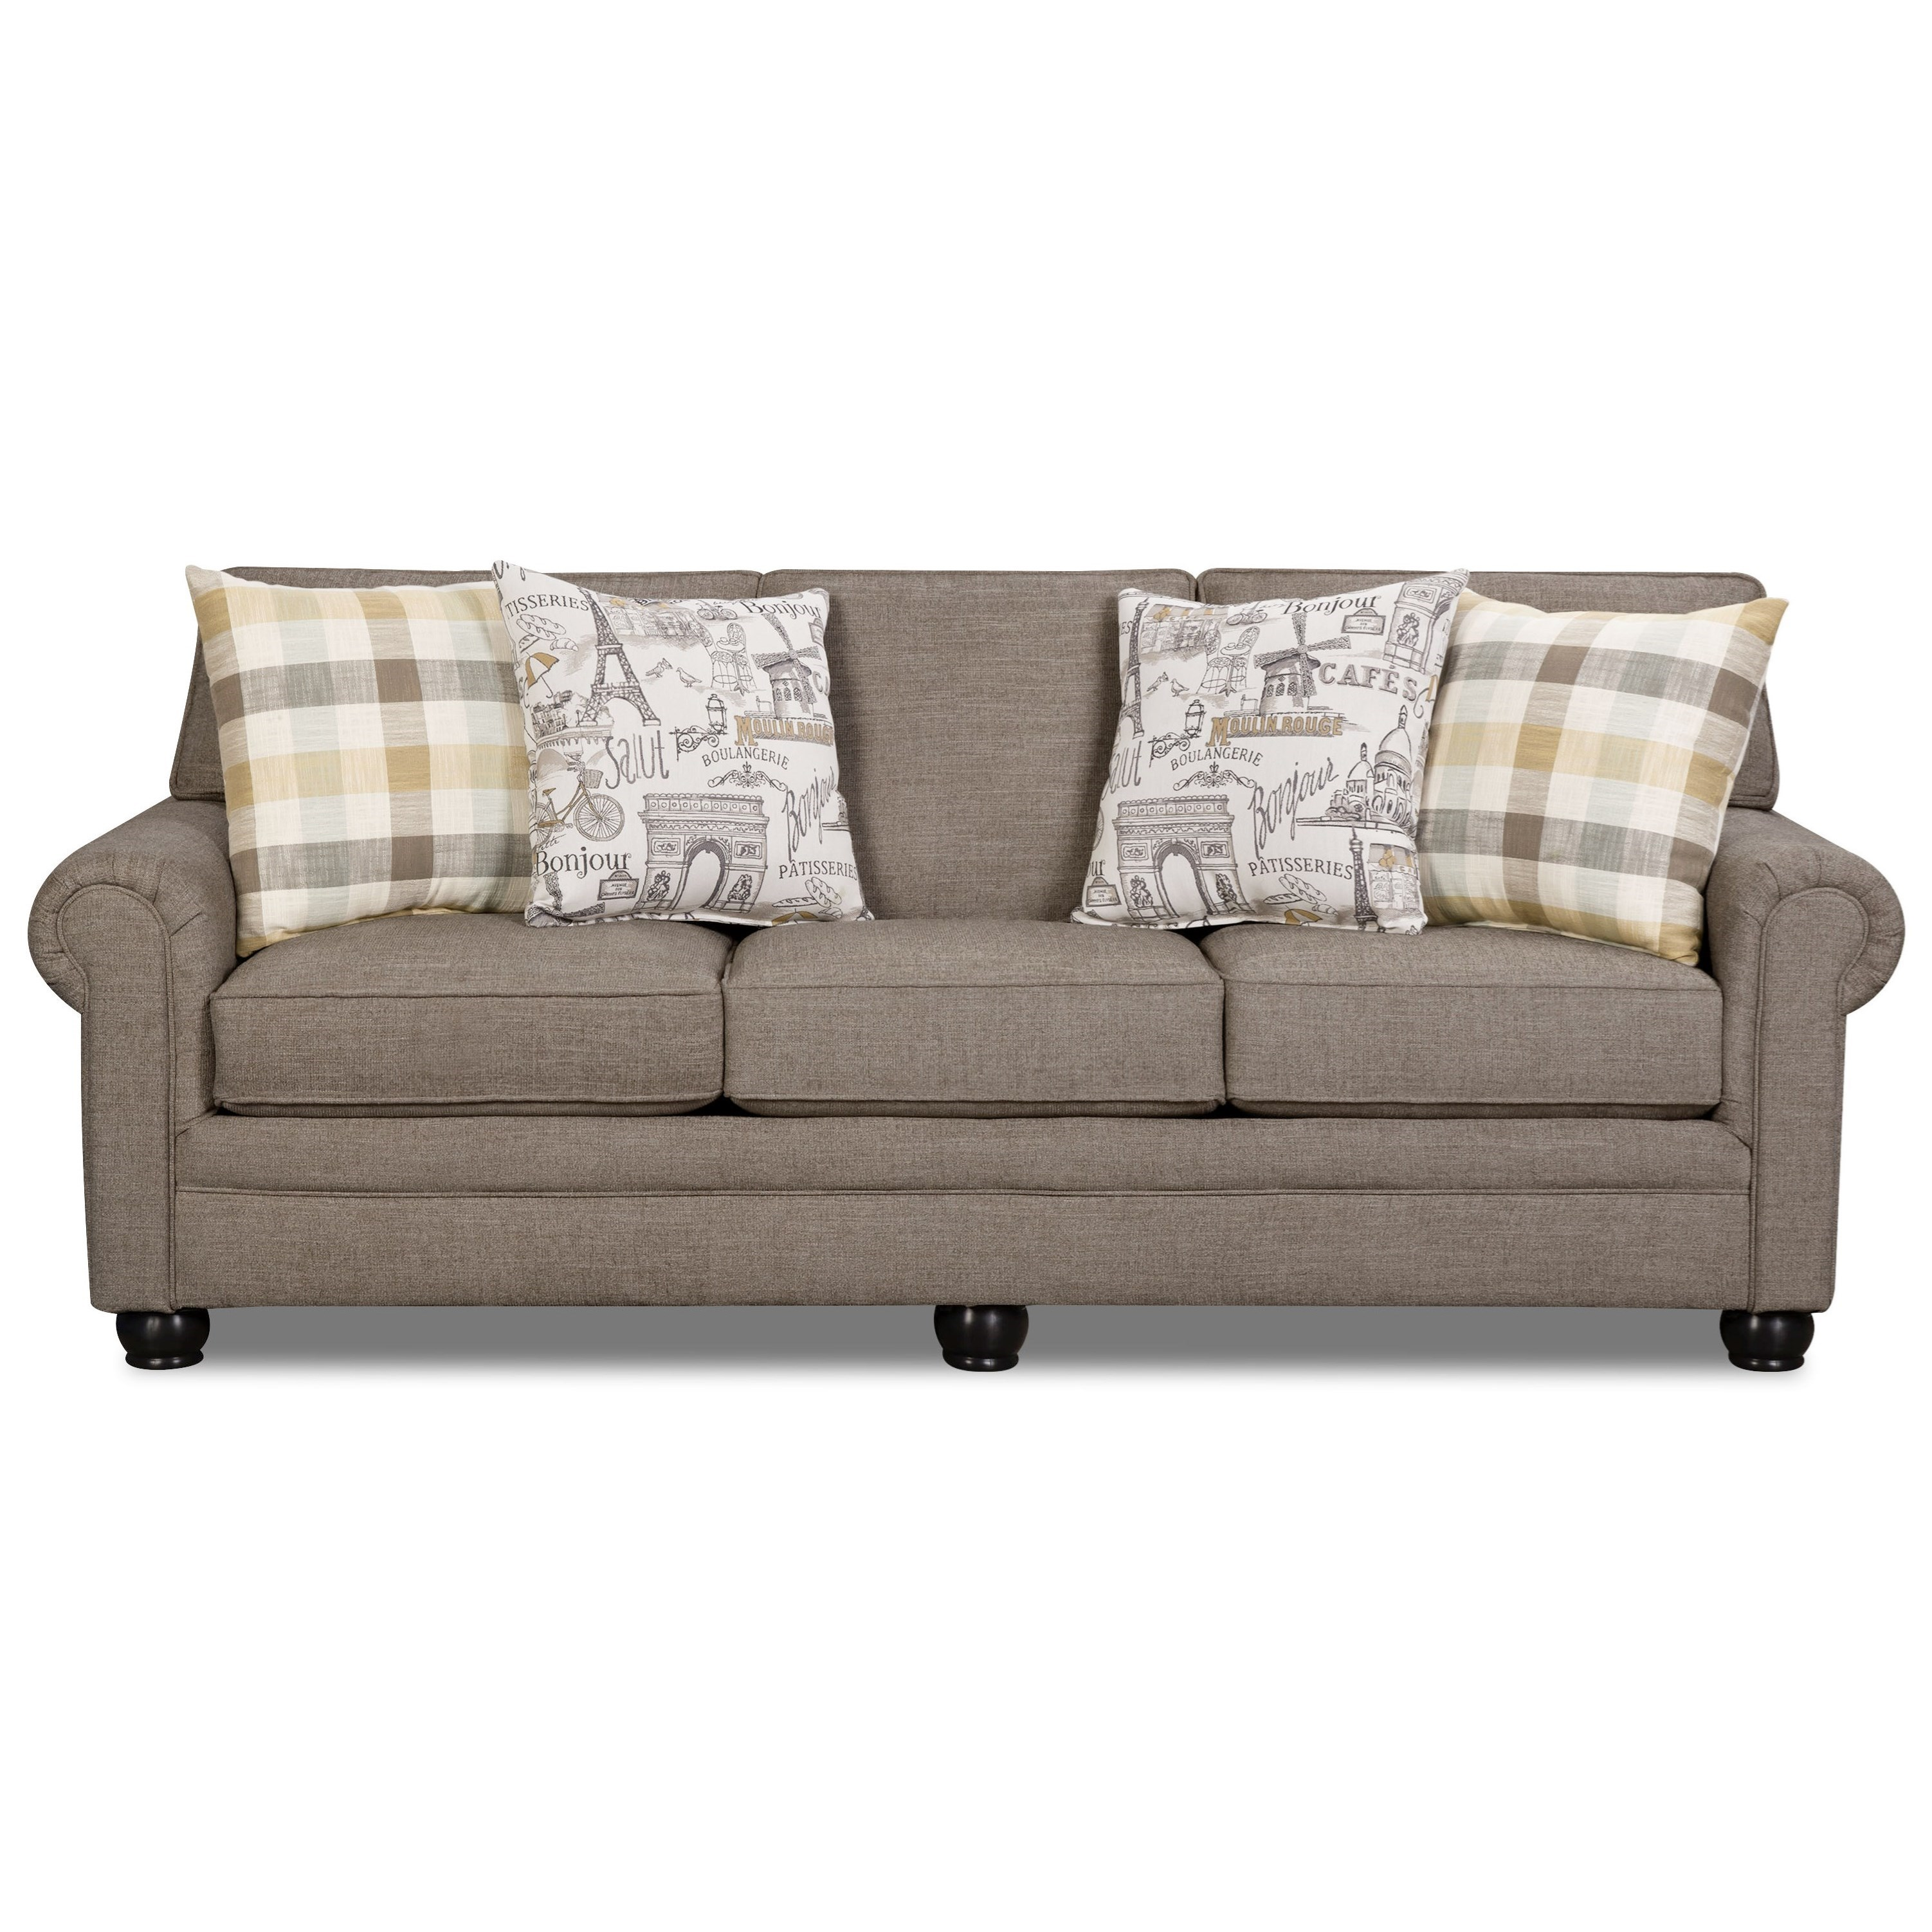 97D0 Sofa by Corinthian at Story & Lee Furniture